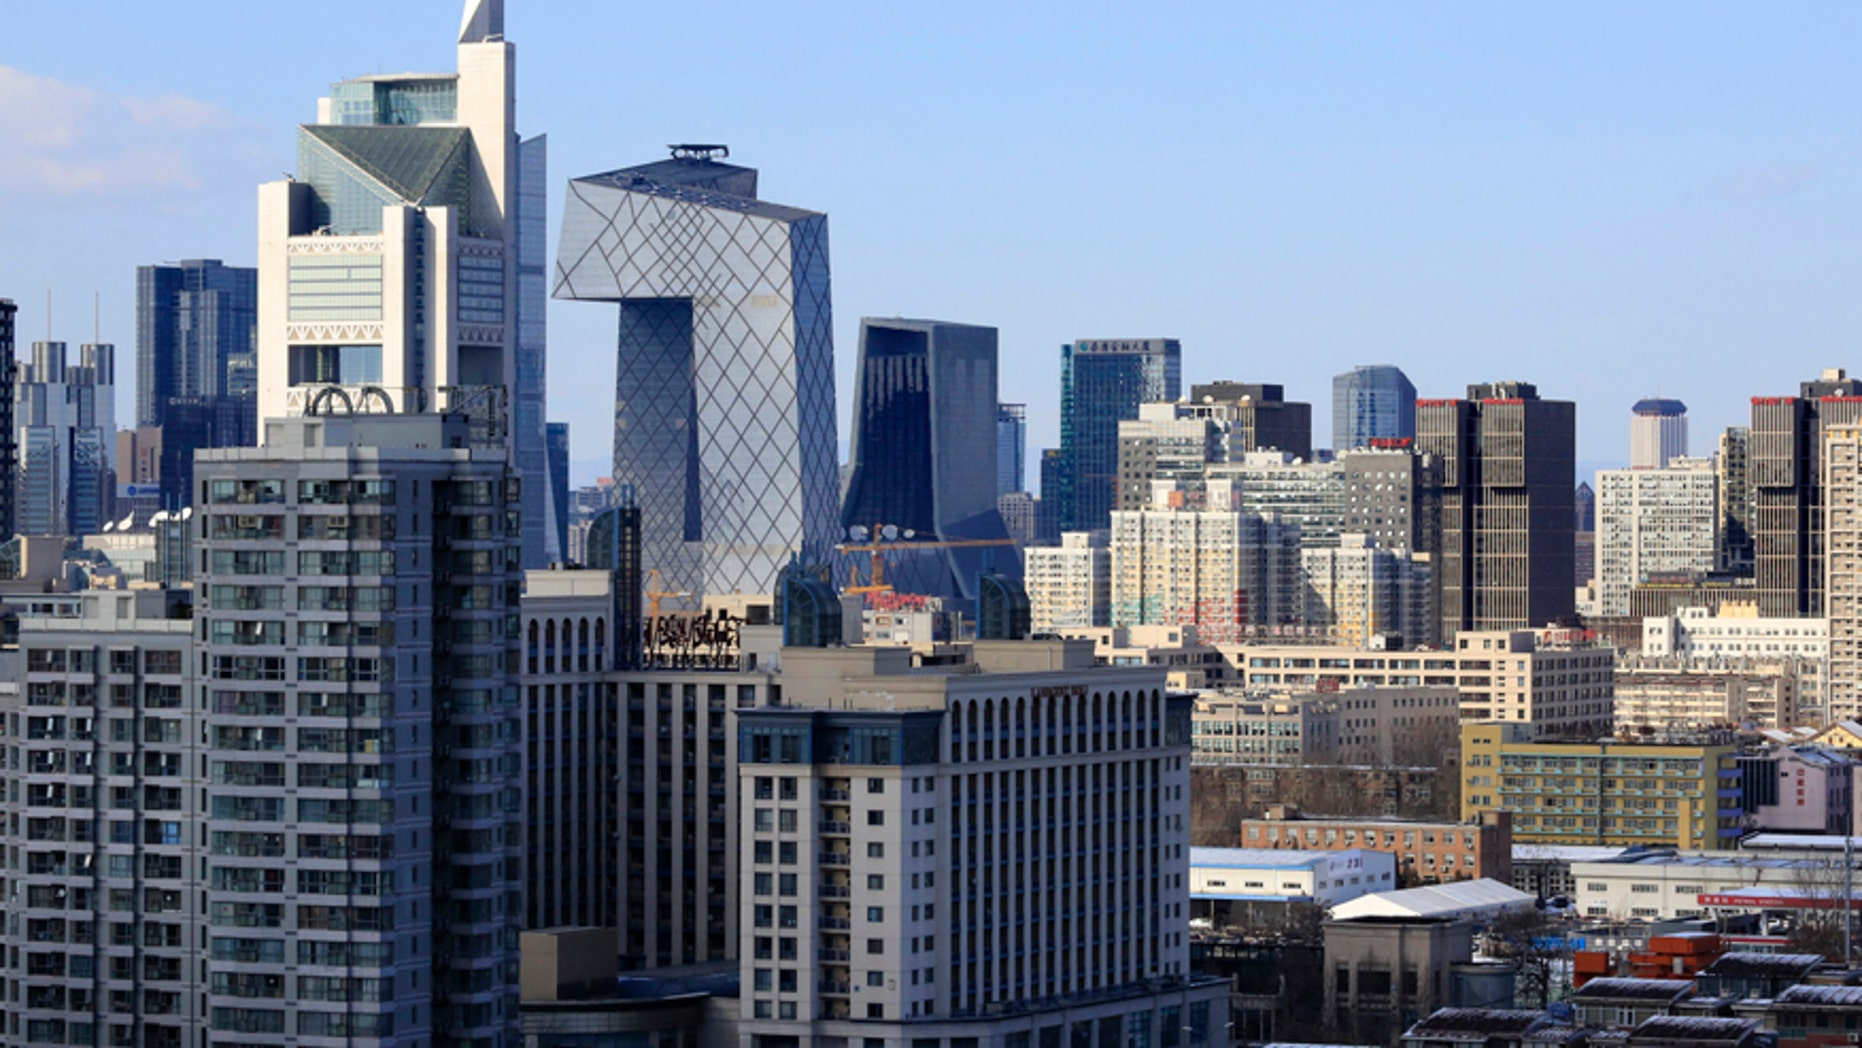 Commercial and residential buildings in Beijing.